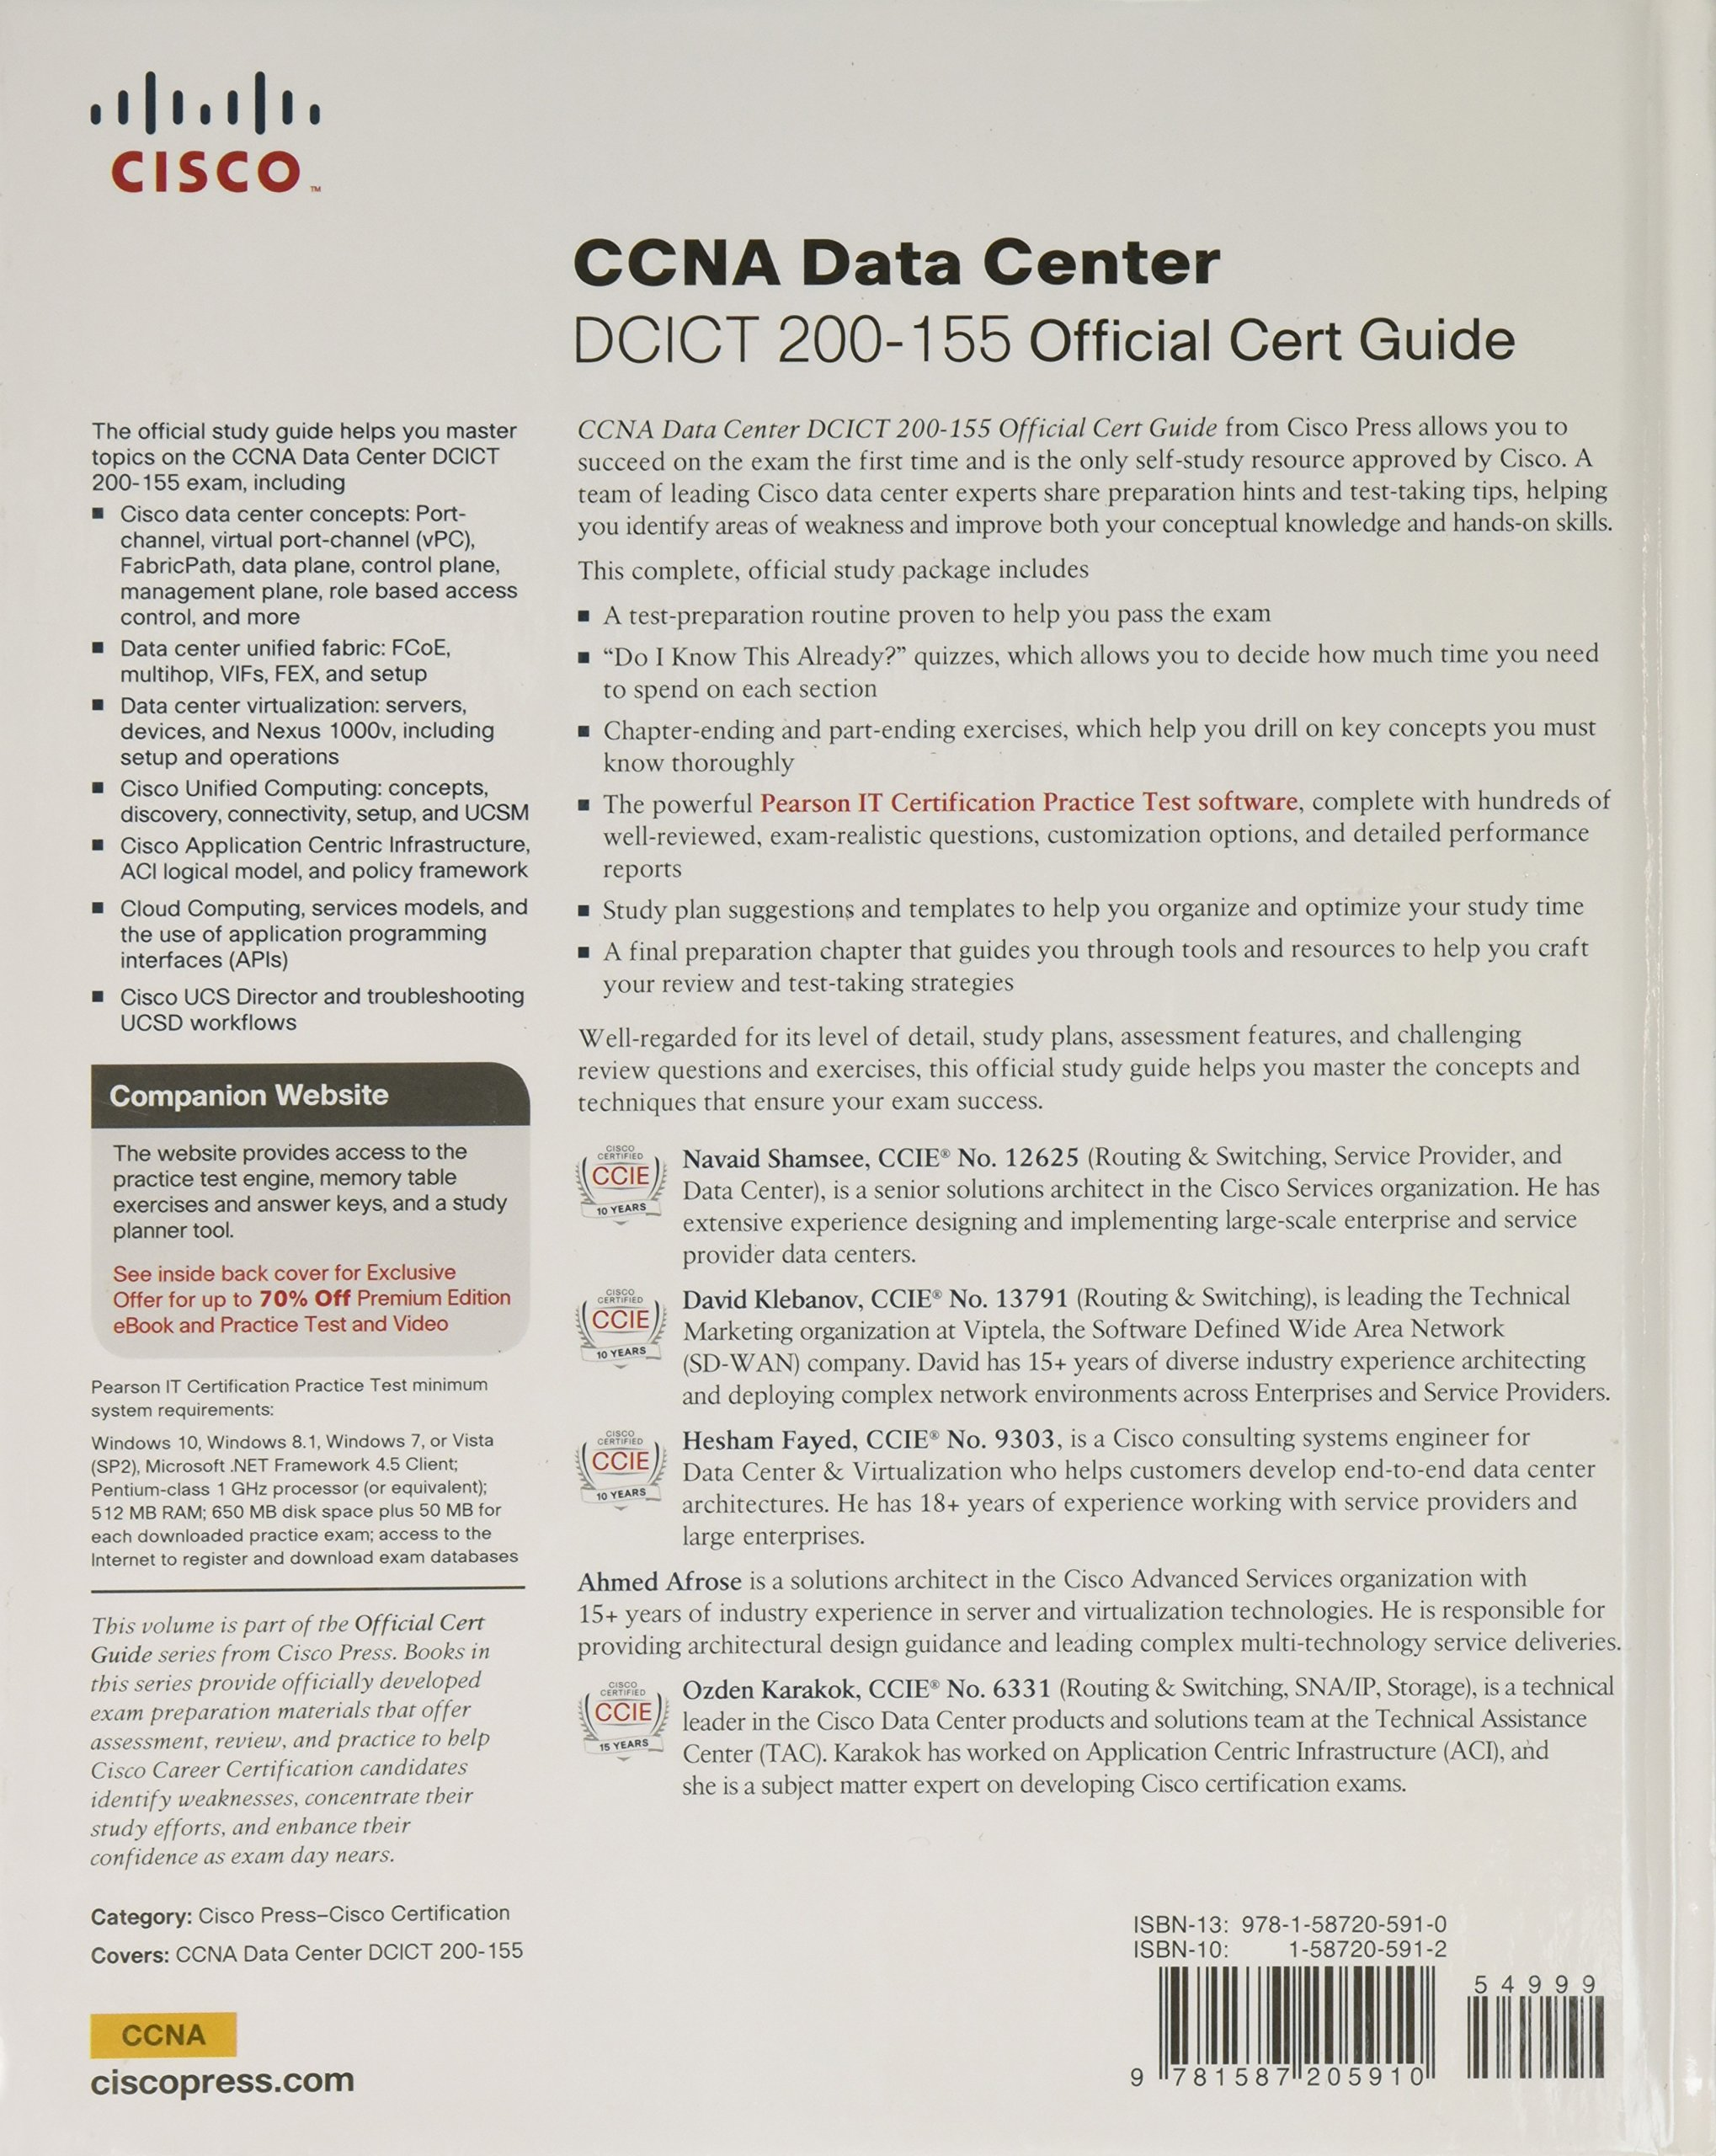 Buy ccna data center dcict 200 155 official cert guide buy ccna data center dcict 200 155 official cert guide certification guide book online at low prices in india ccna data center dcict 200 155 official xflitez Gallery